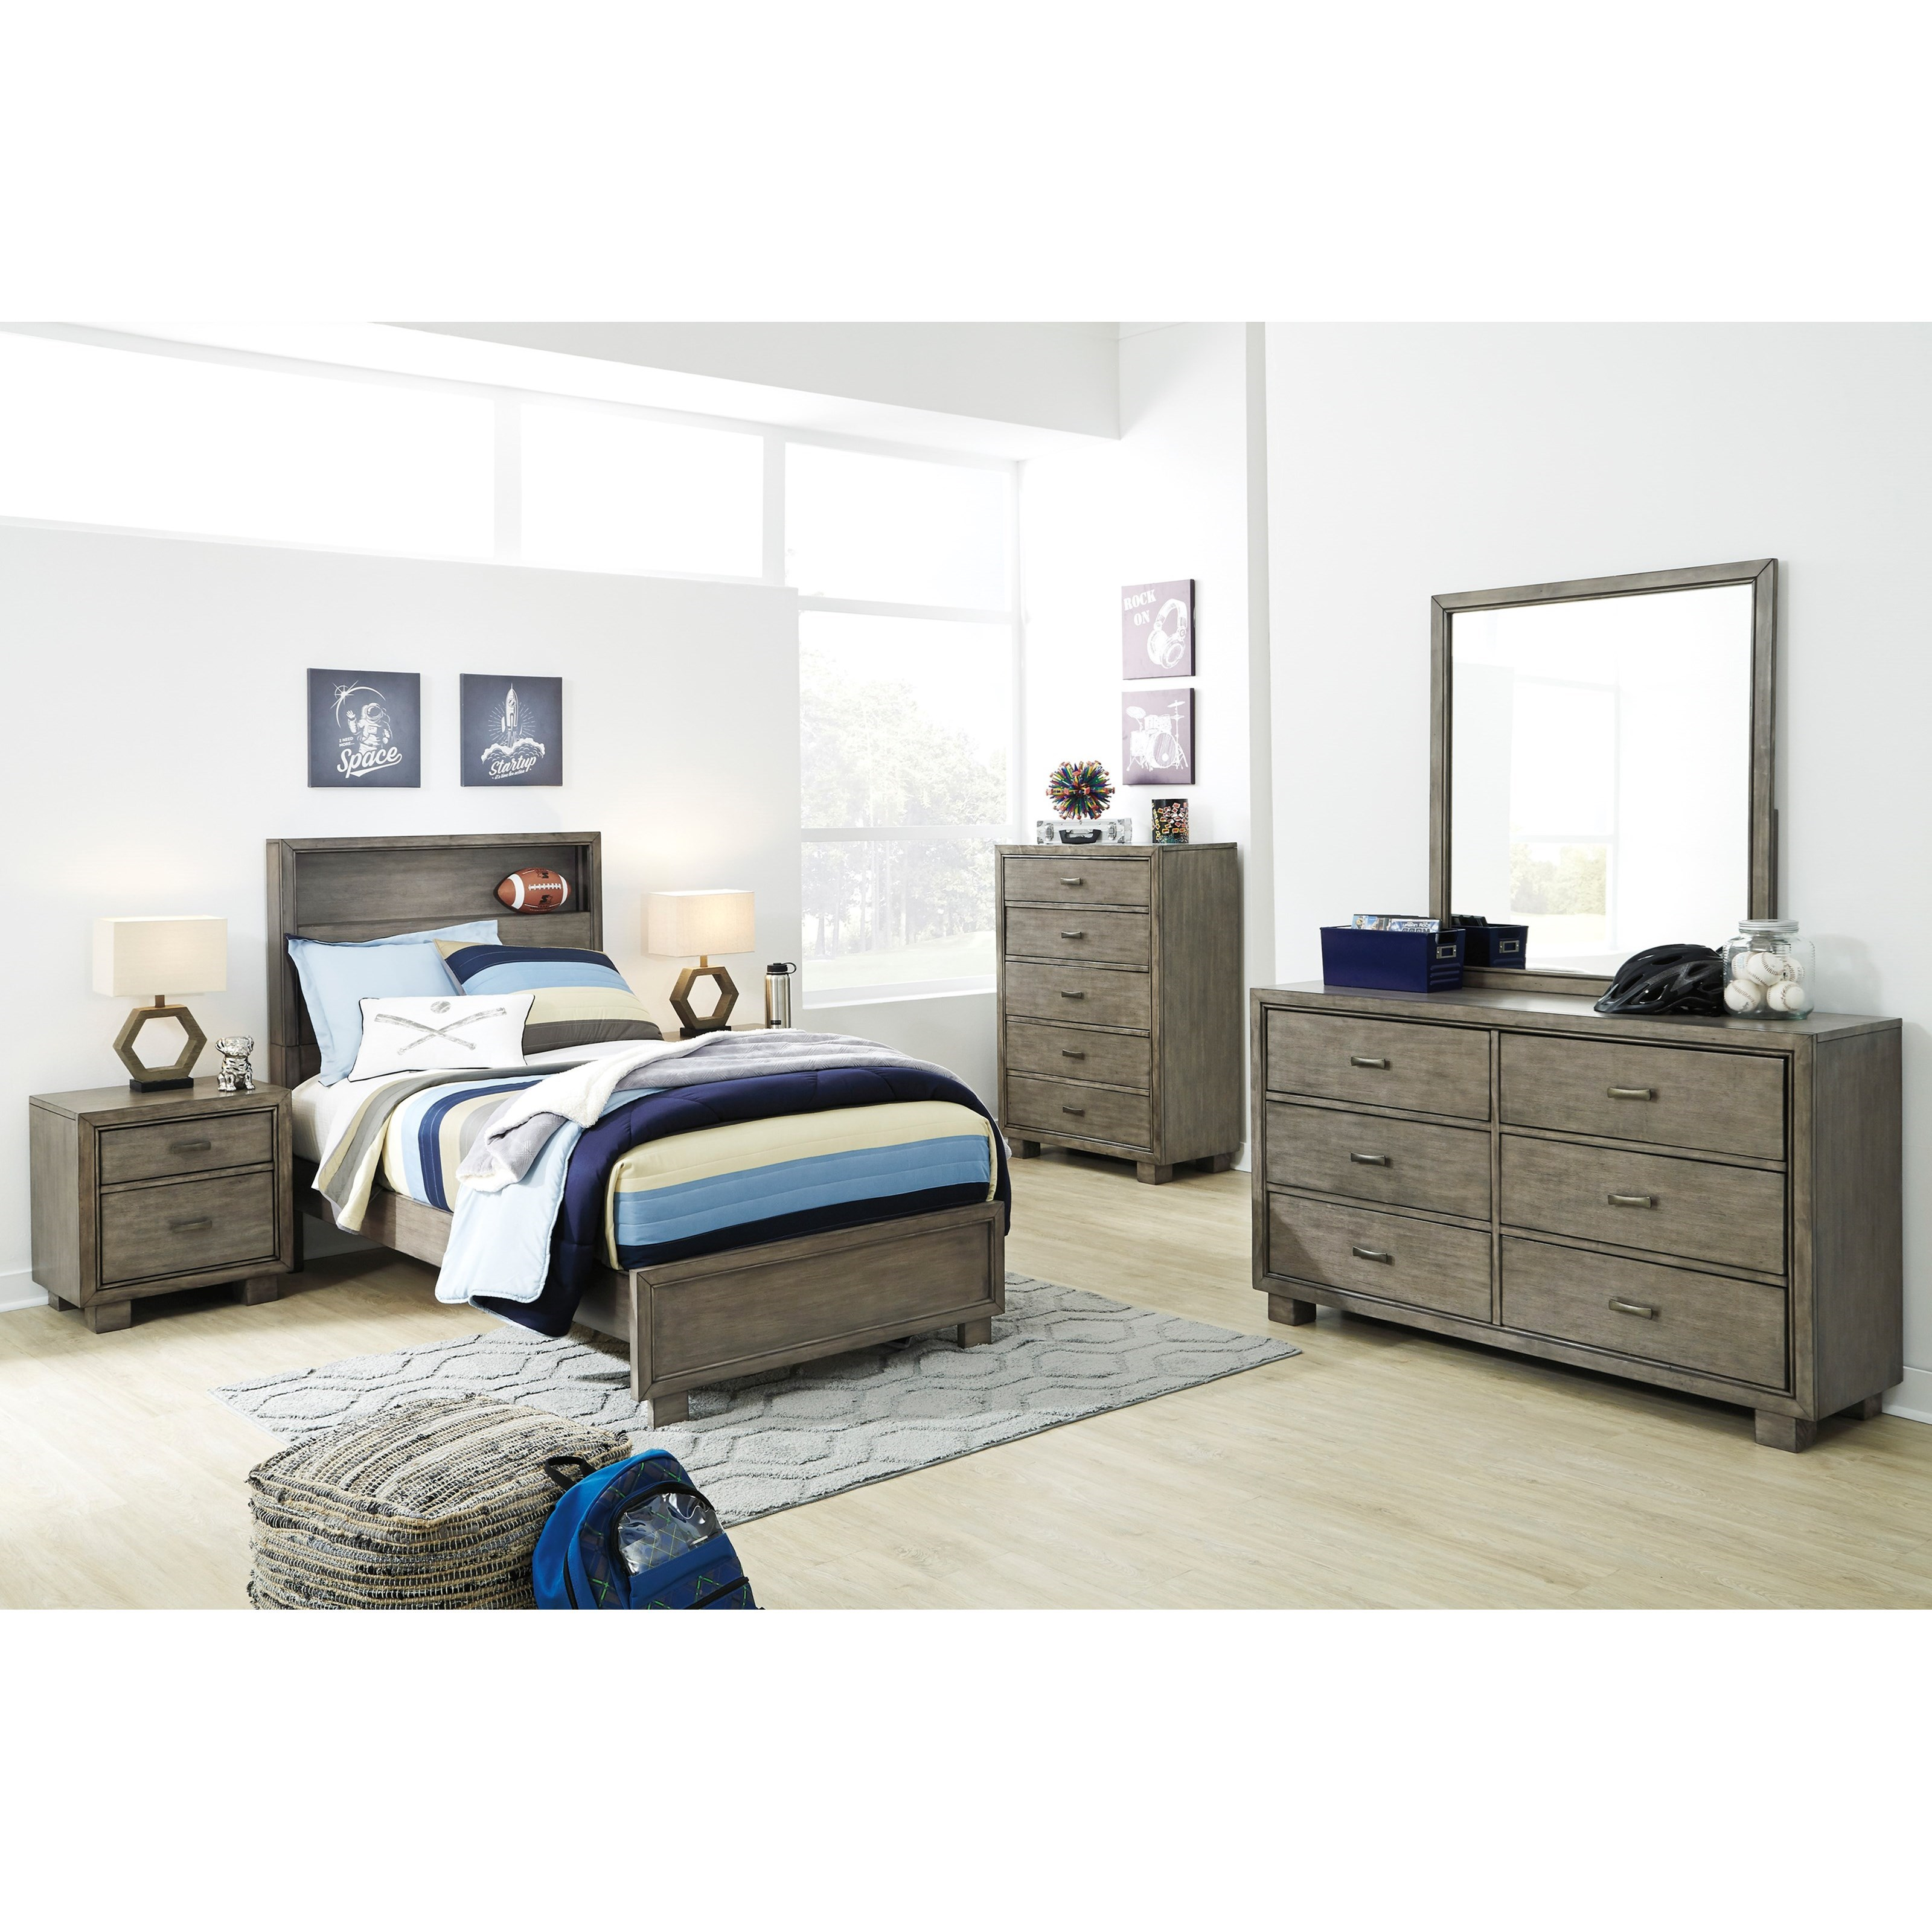 Arnett Twin Bedroom Group by Signature Design by Ashley at Standard Furniture